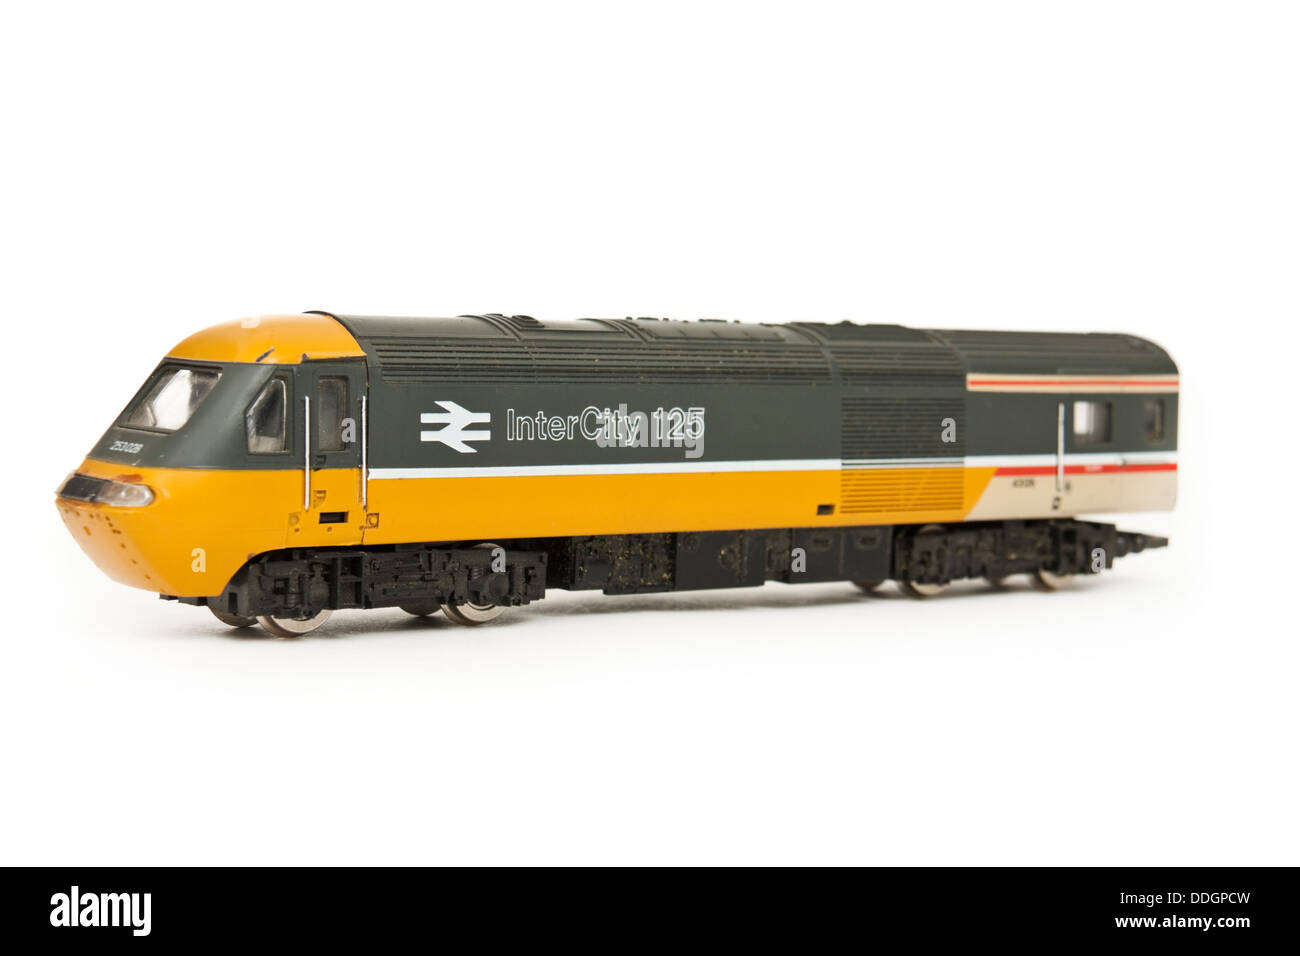 British Rail InterCity 125 model railway locomotive Stock Photo